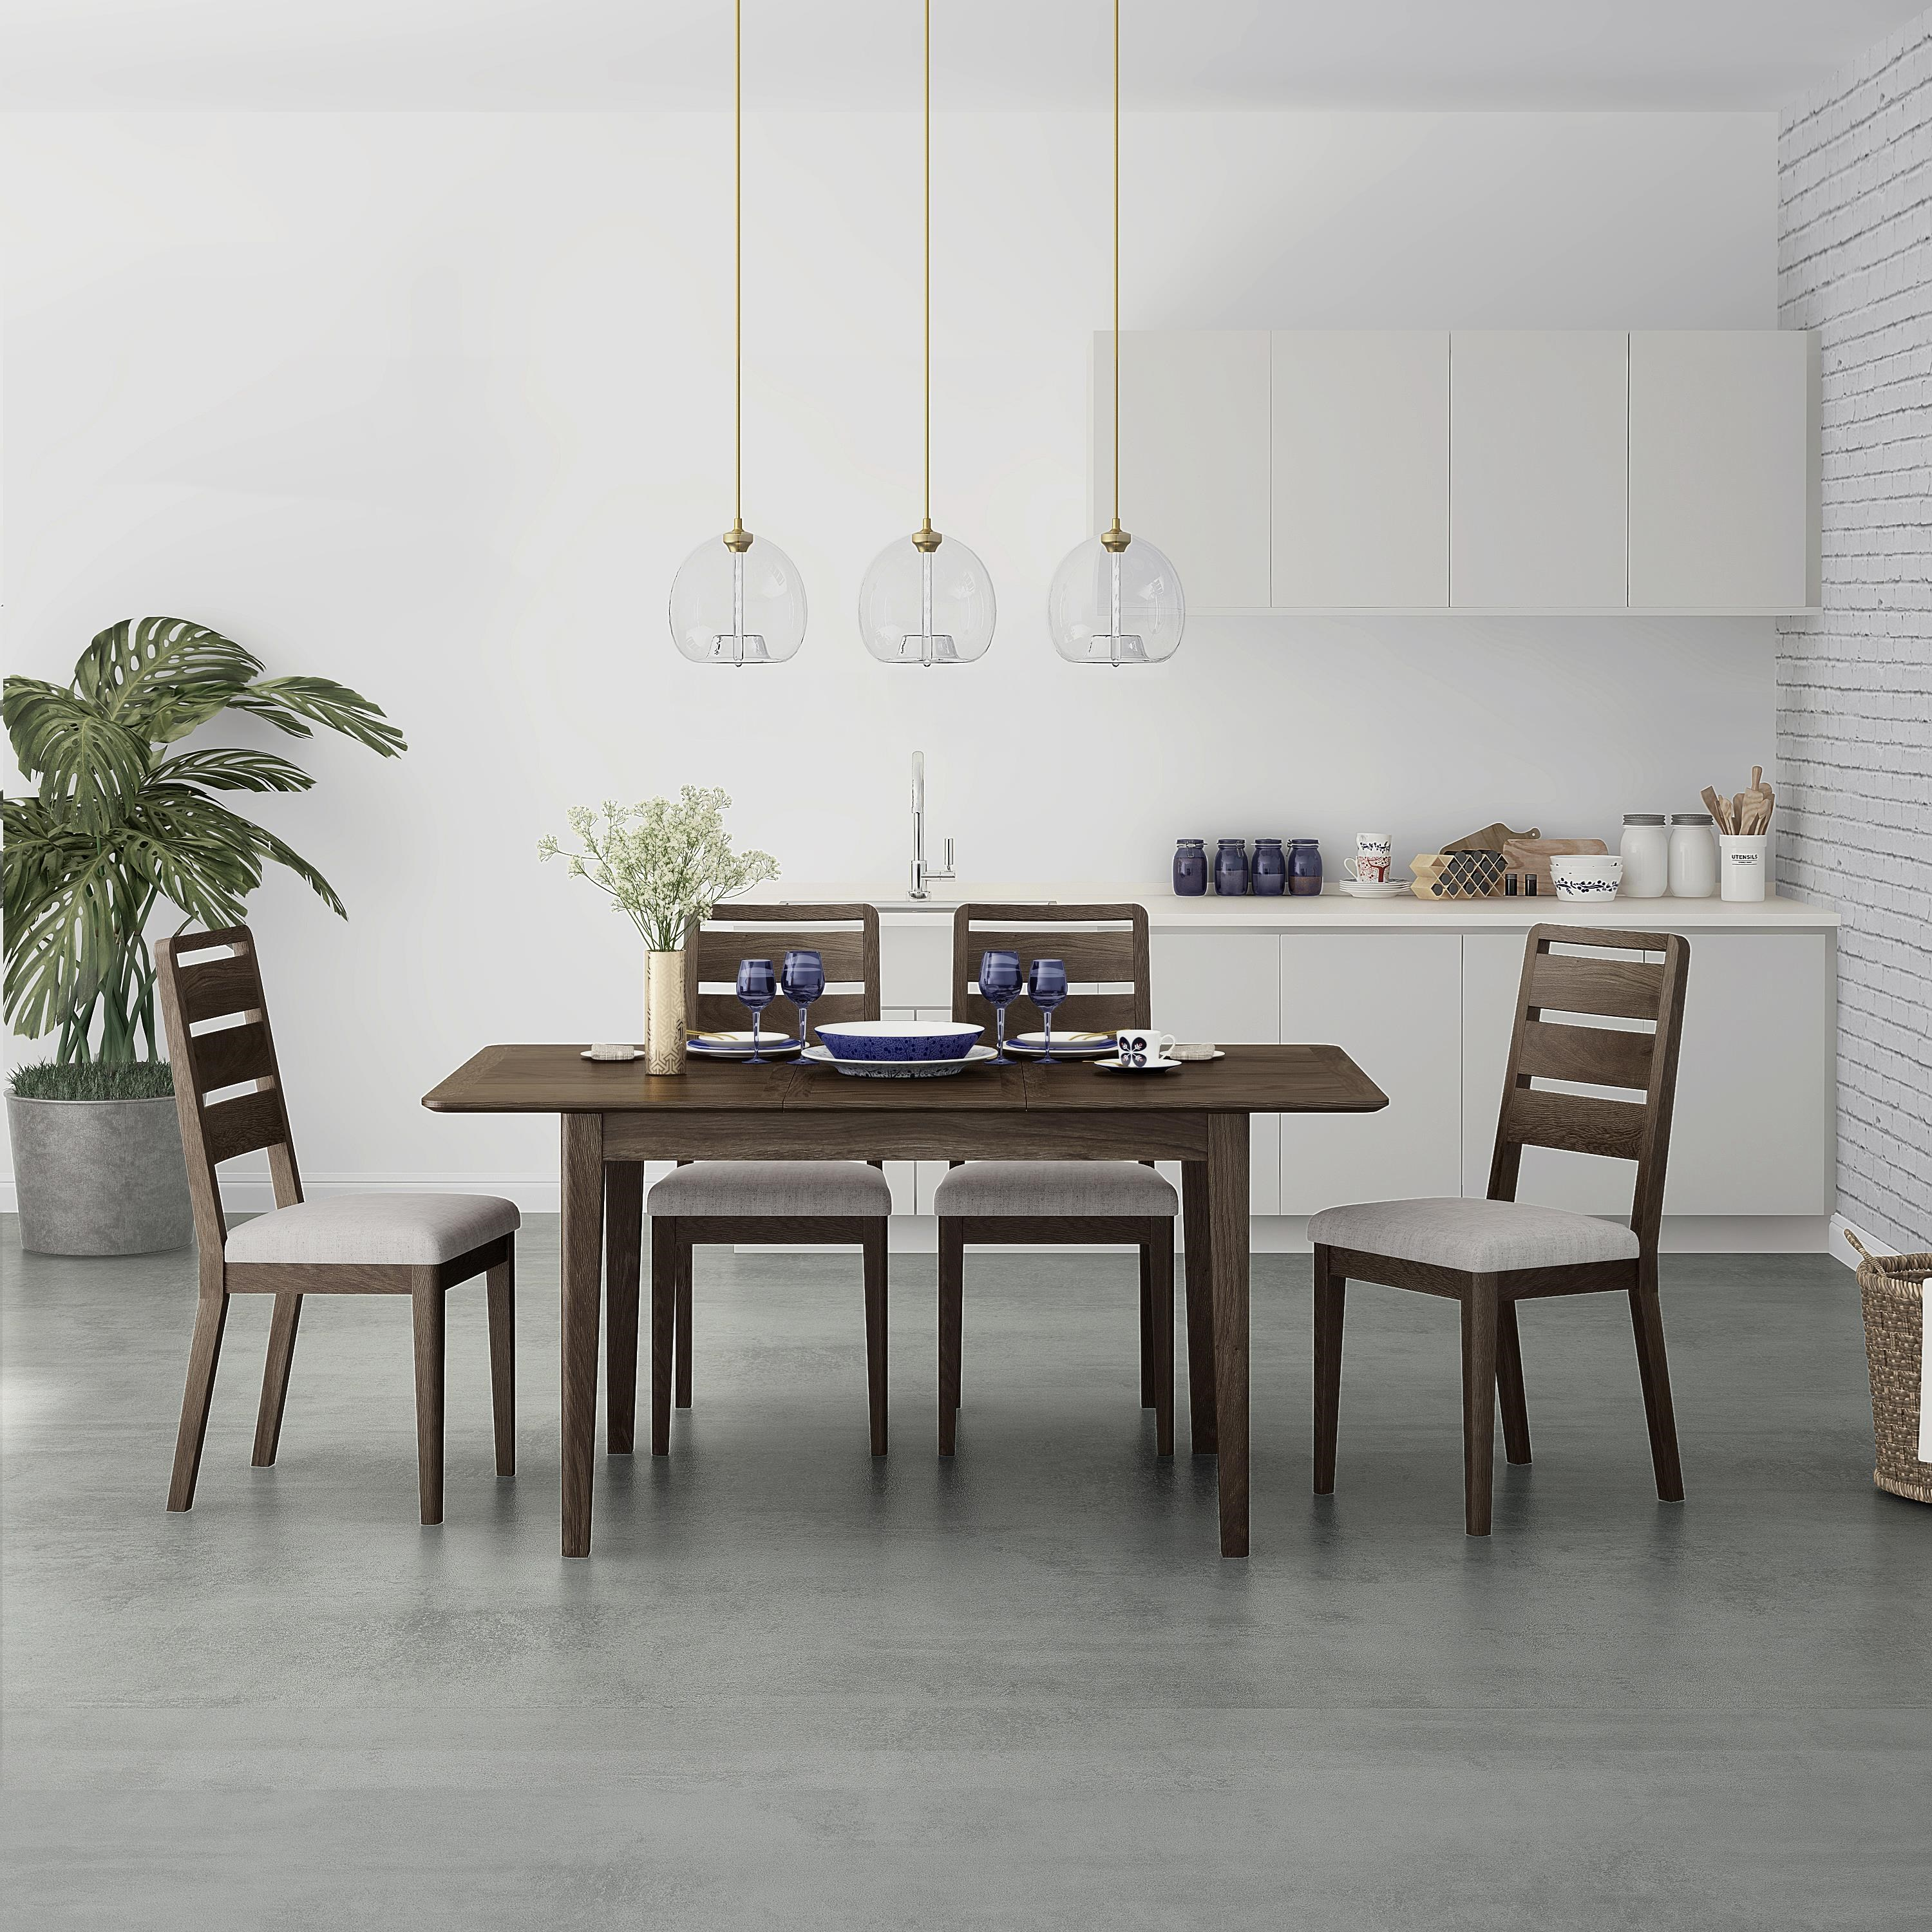 Amherst 5 Piece Dining Set by Global Home at HomeWorld Furniture